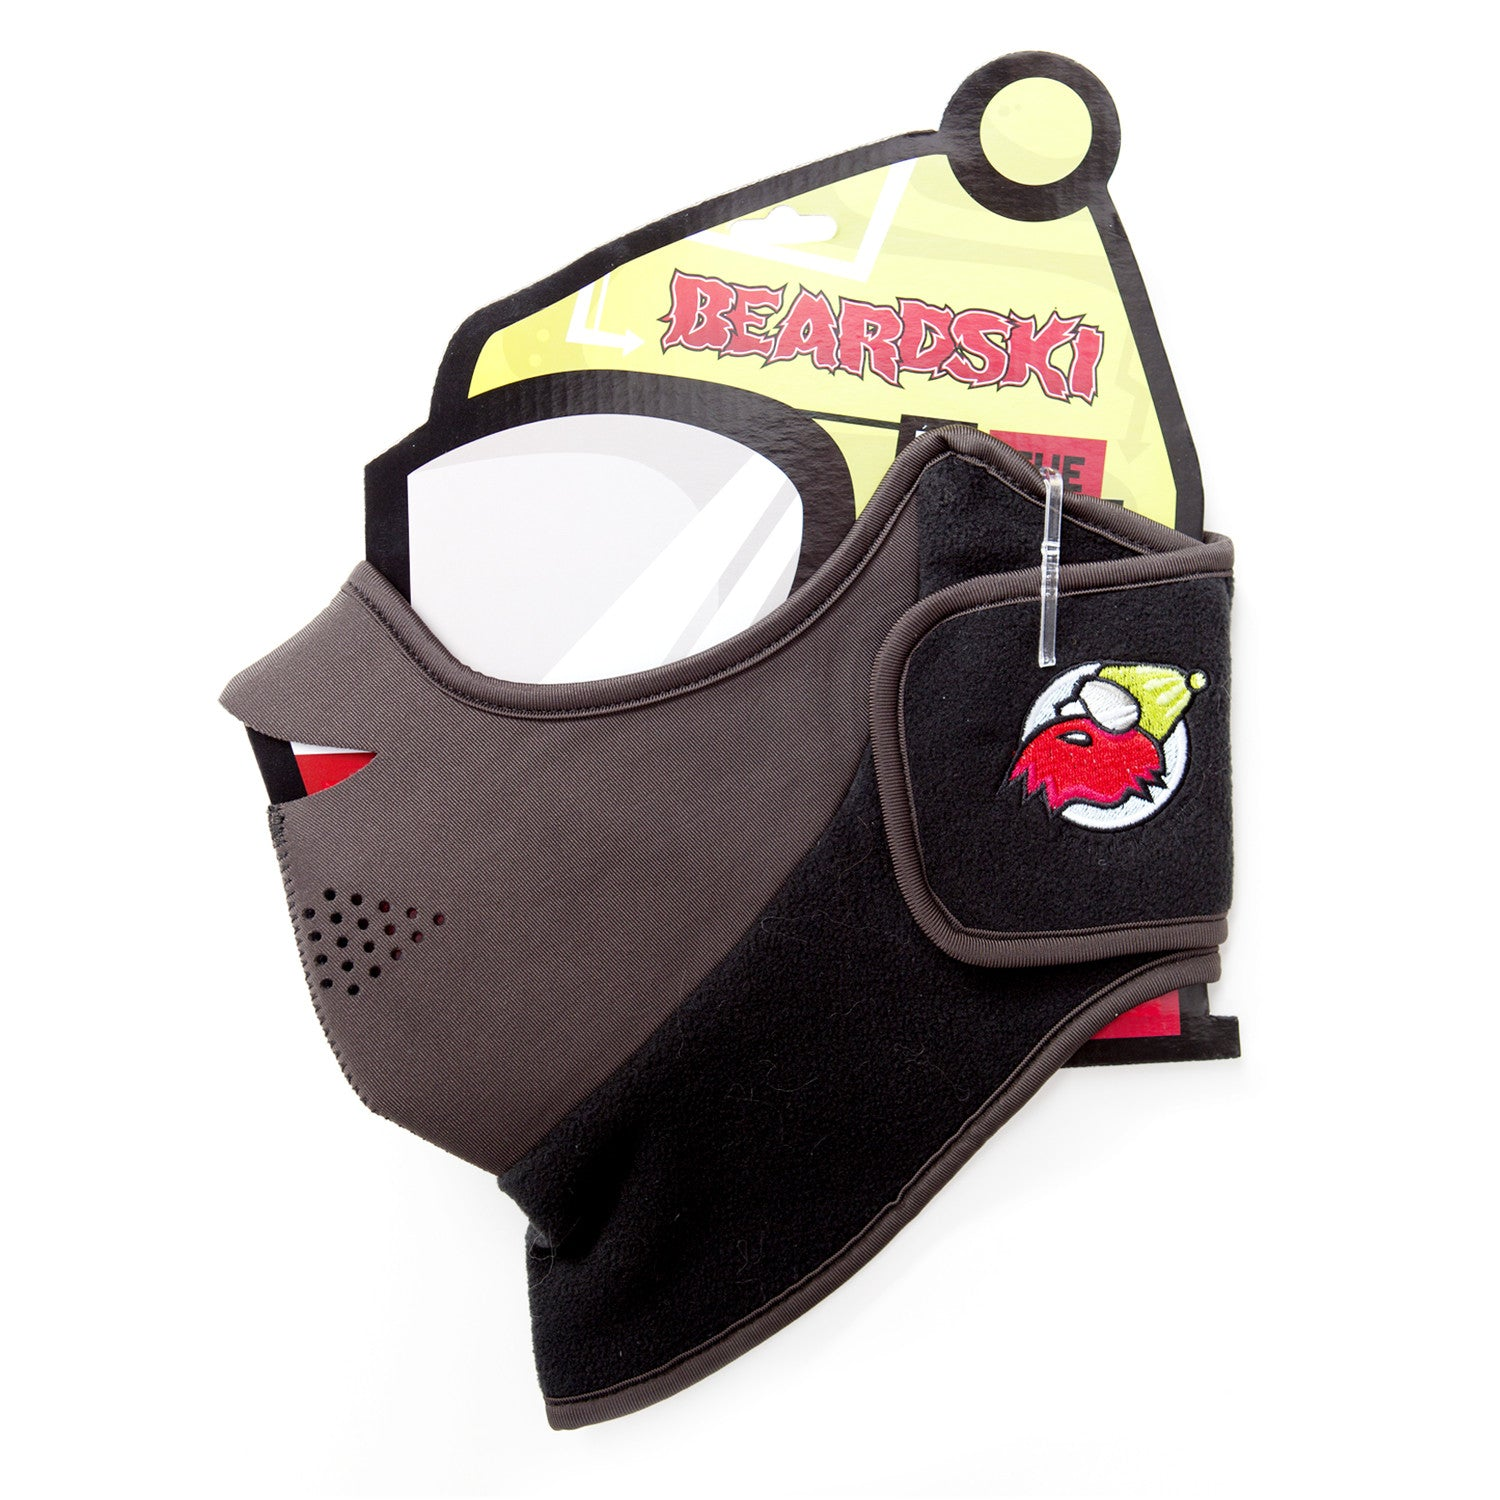 Beardski Church Skimask